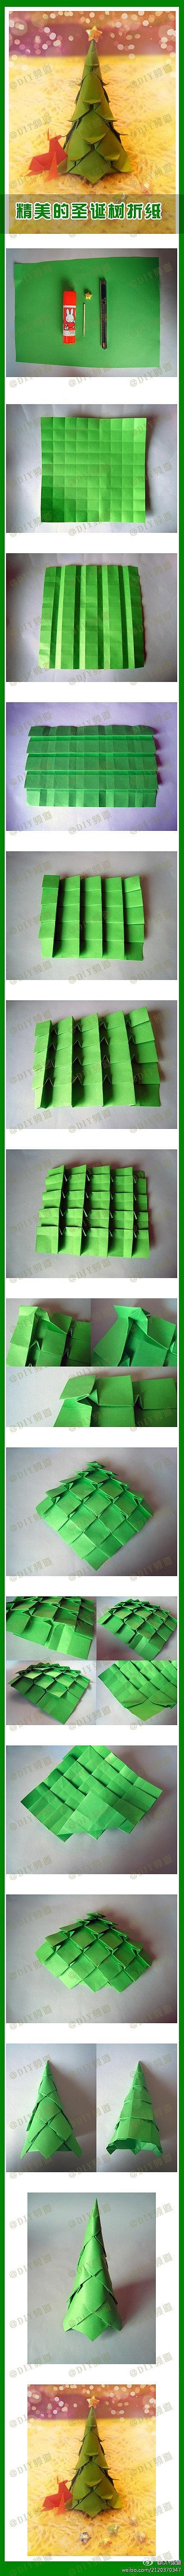 How to fold origami paper craft Christmas trees step by step DIY tutorial instructions